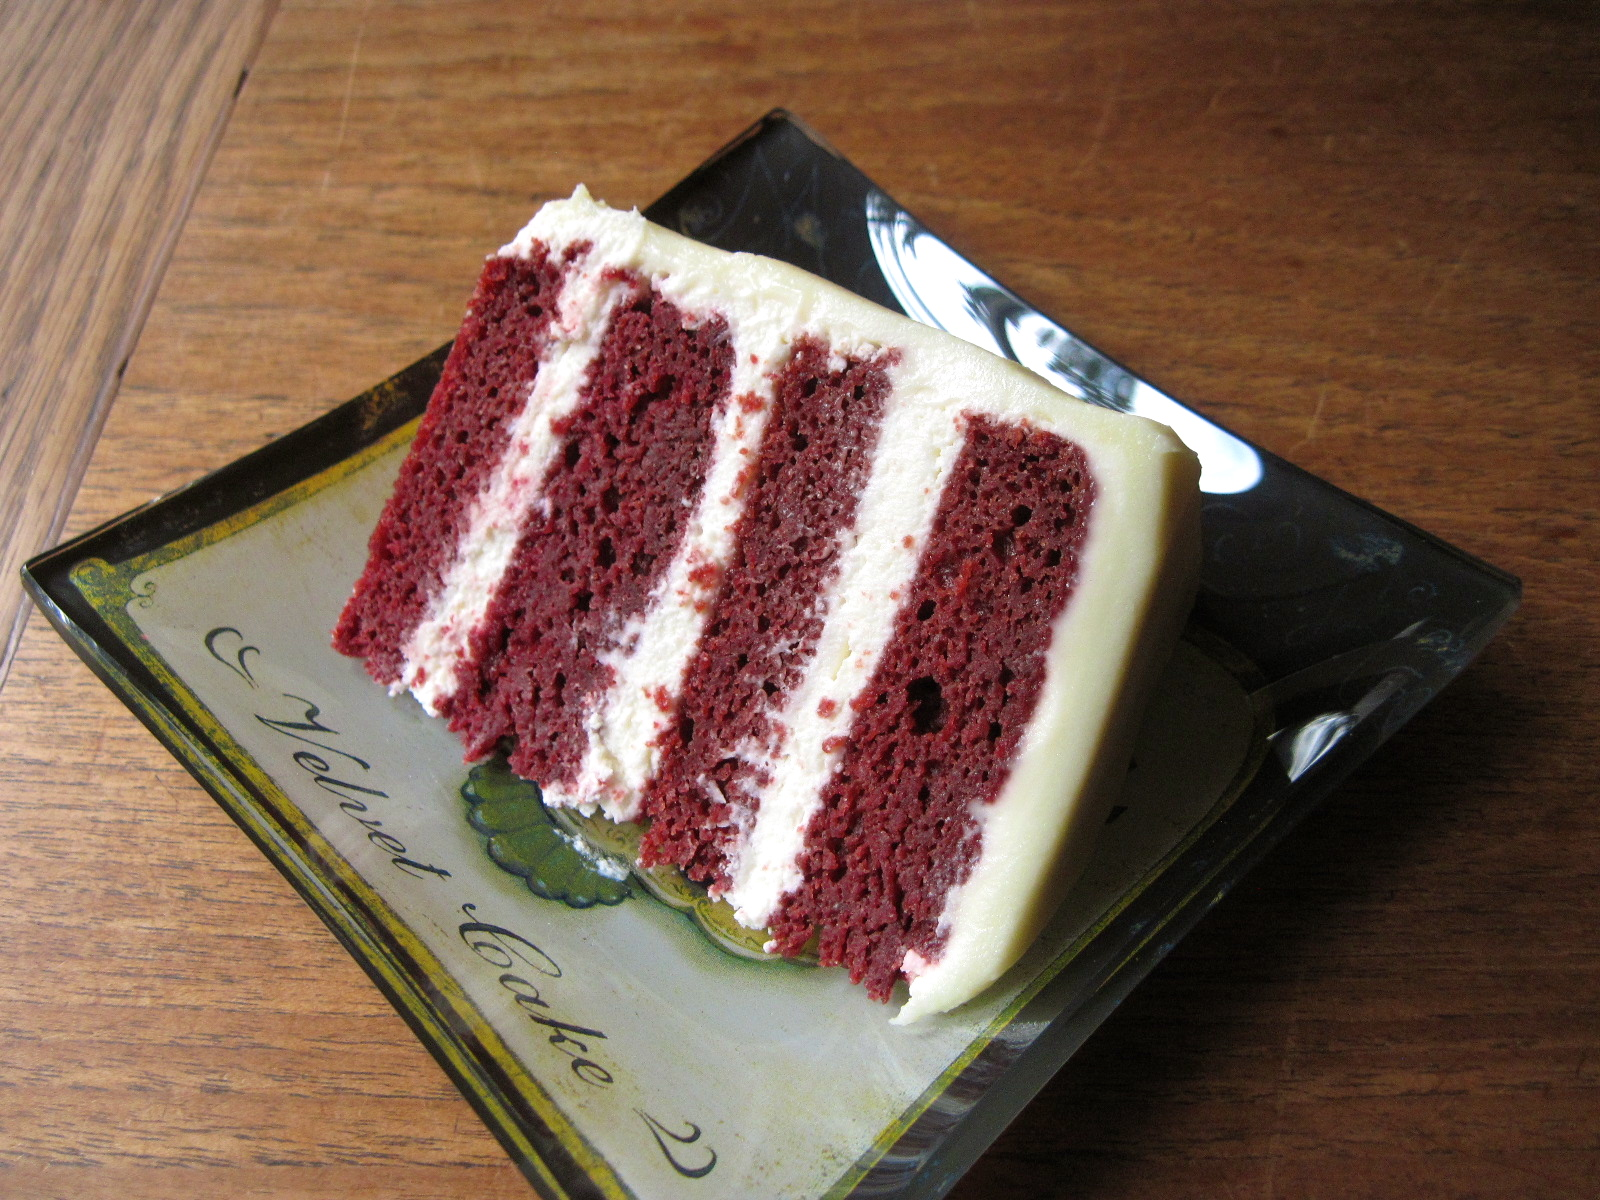 Good Cake Icing Recipes: Cream Cheese Swiss Meringue Buttercream Frosting, Take 2